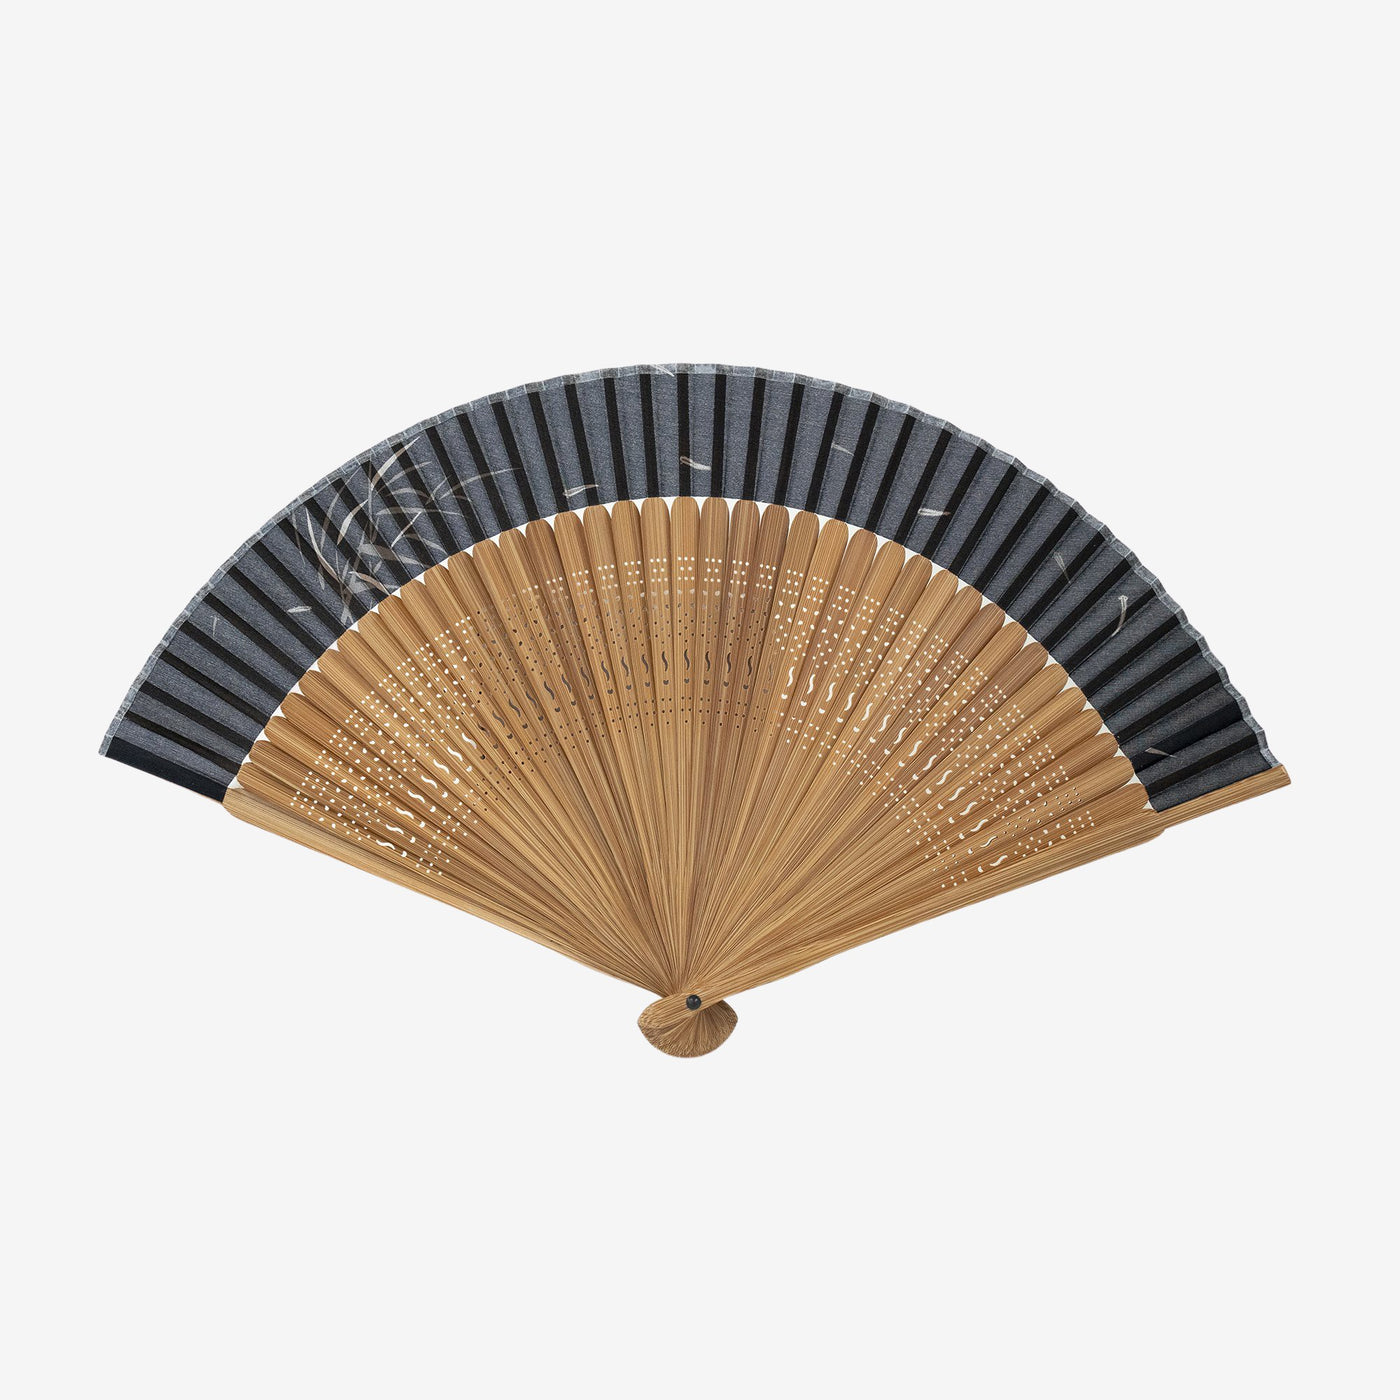 Bamboo Fan with Bag / Black Bamboo Leaves